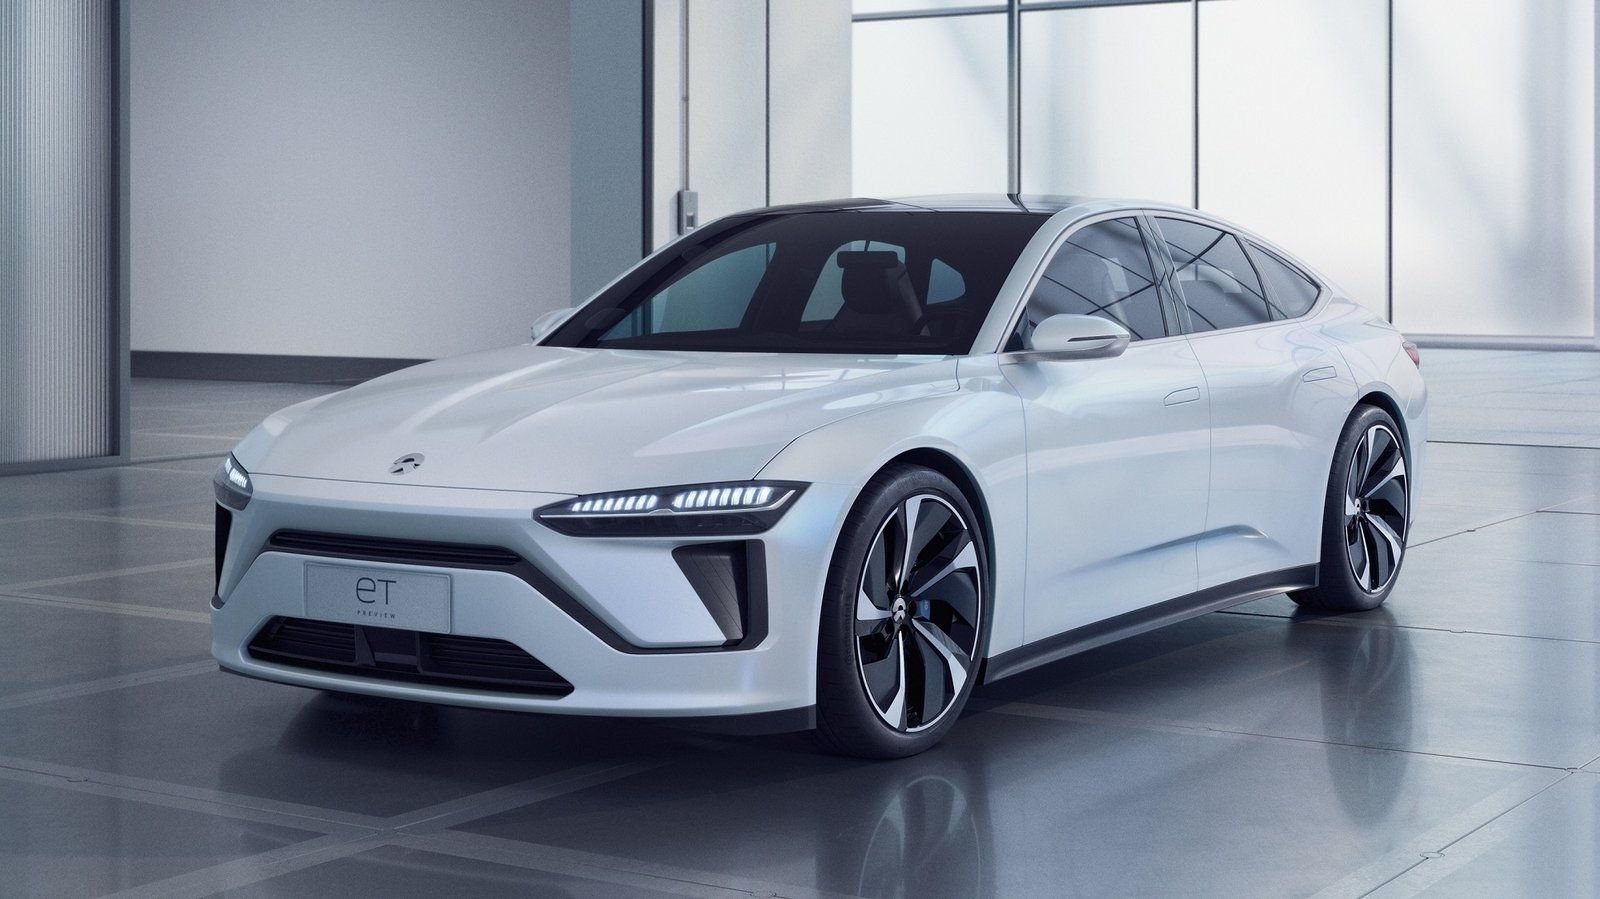 Stunning Nio Et Preview Concept Would Be A Win For The U S Top Speed In 2020 Electric Cars Solar Powered Cars Car